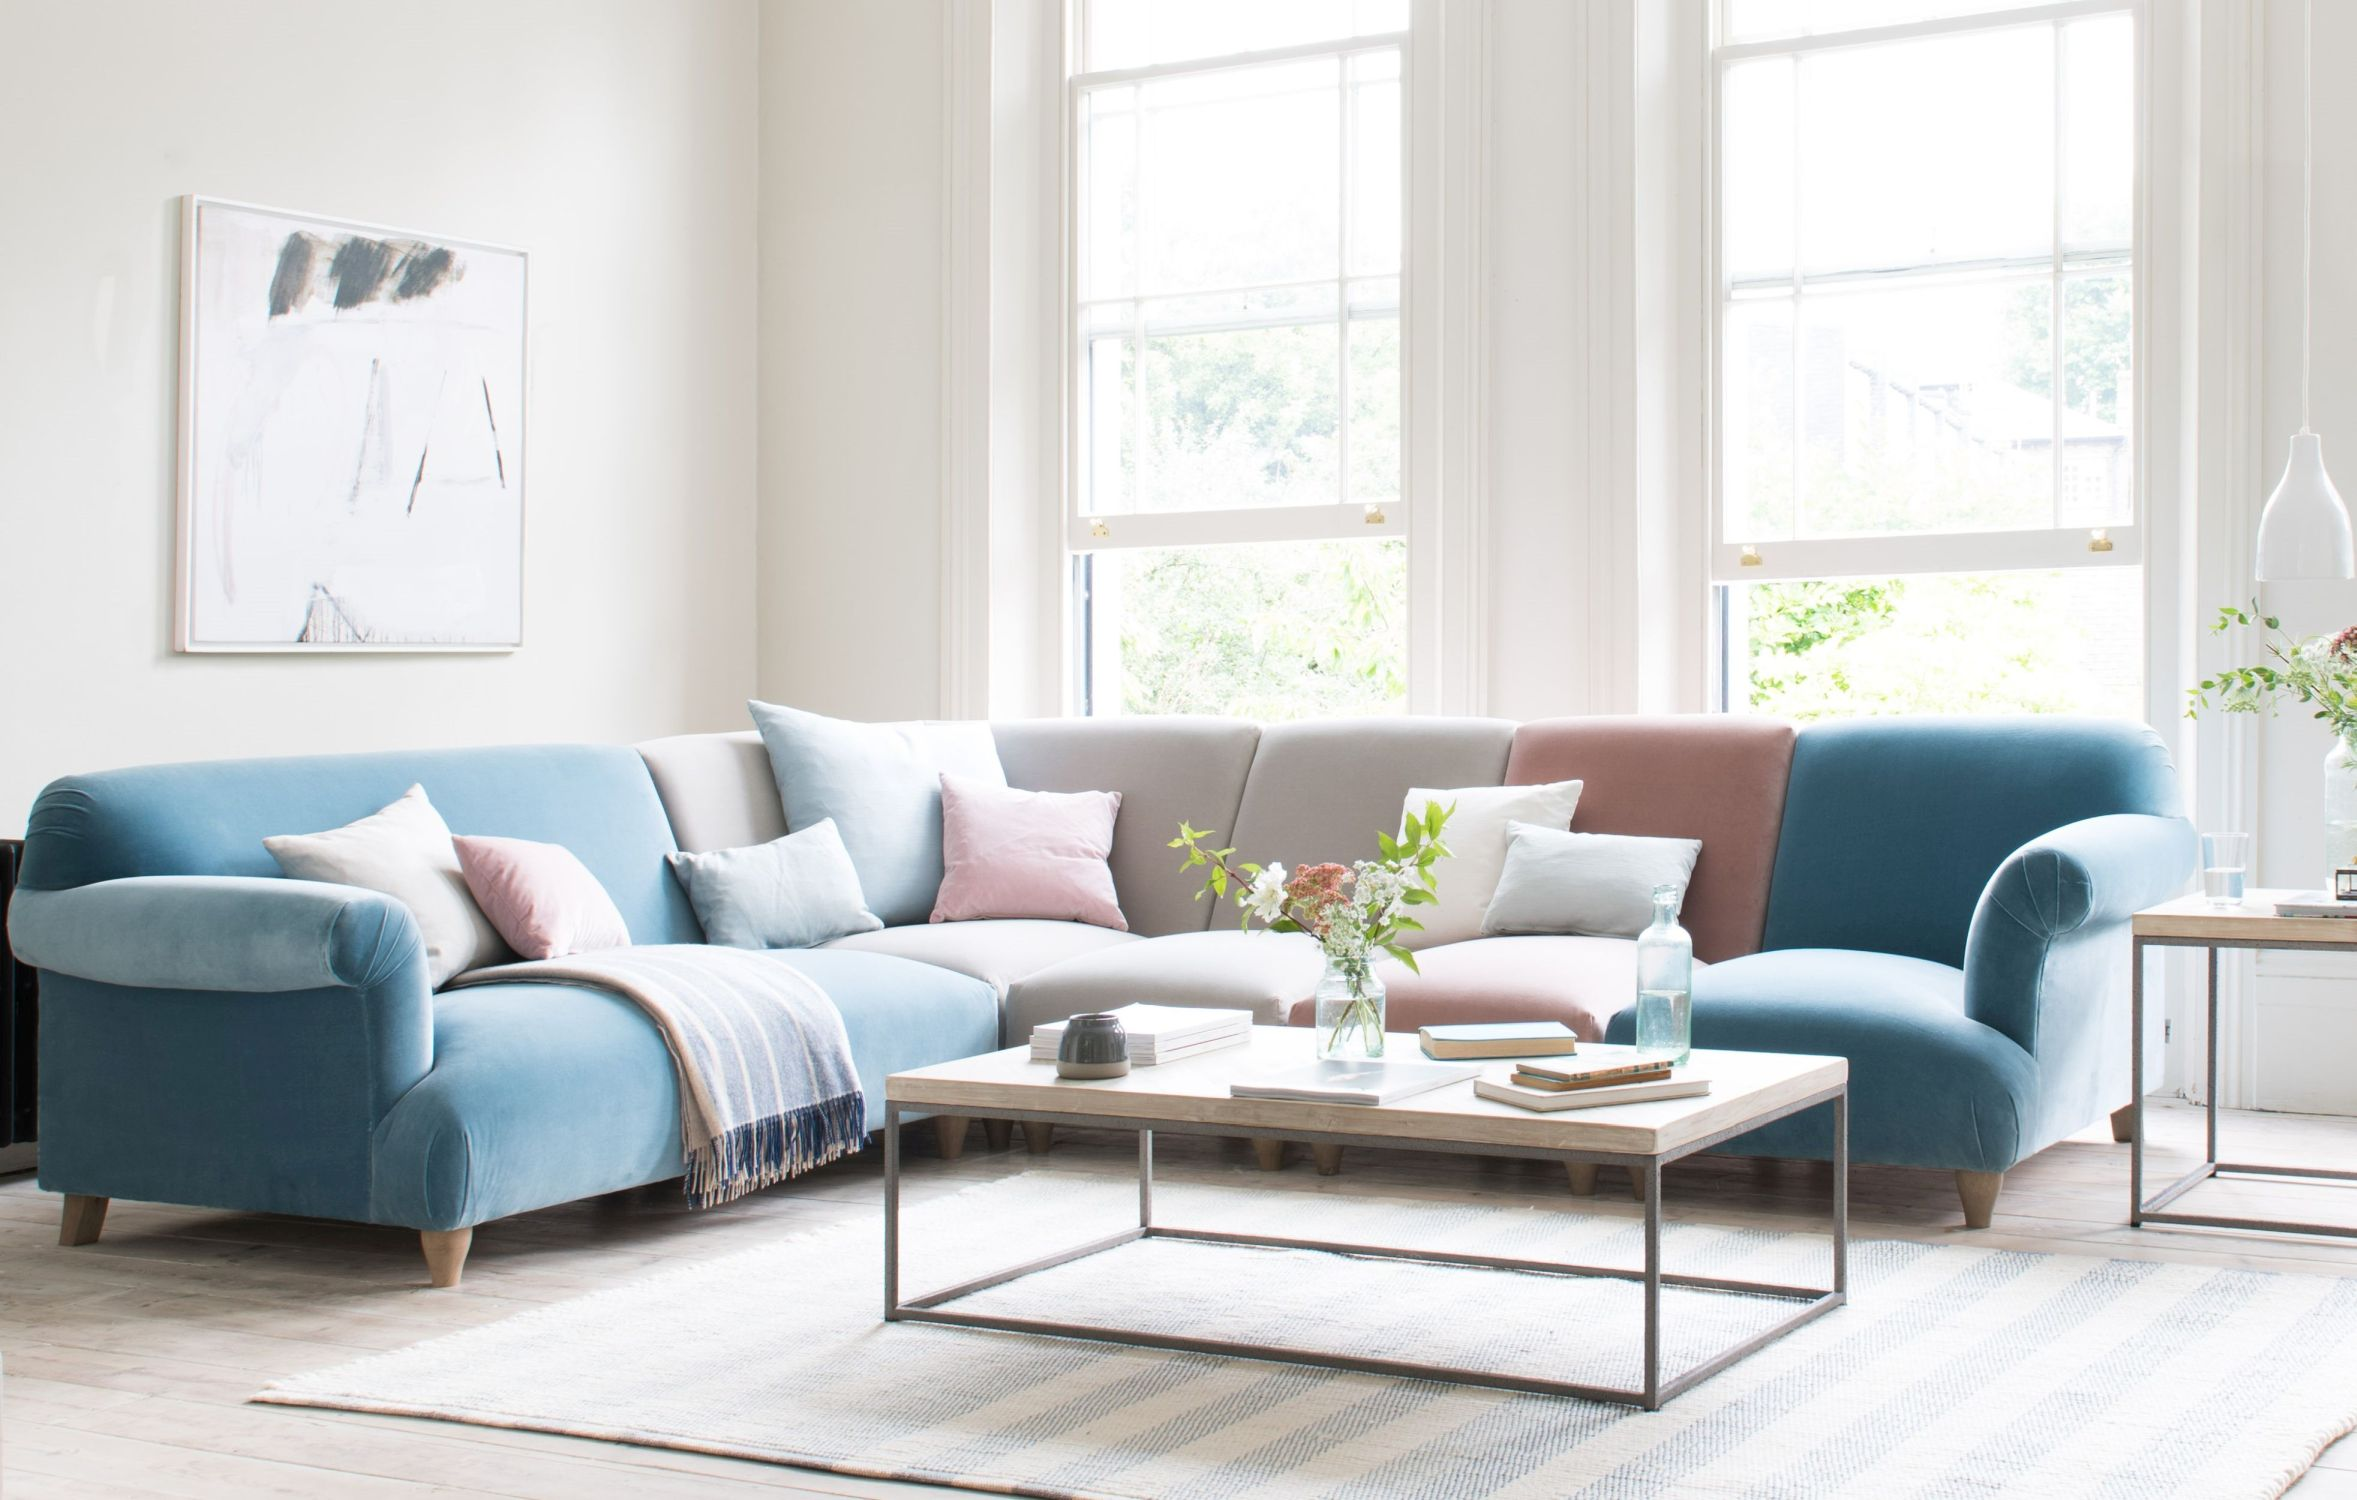 Modular Souffle sofa, from £655, which can be upholstered in one colour/fabric or a variety of colours/fabrics, Loaf (Loaf/PA)